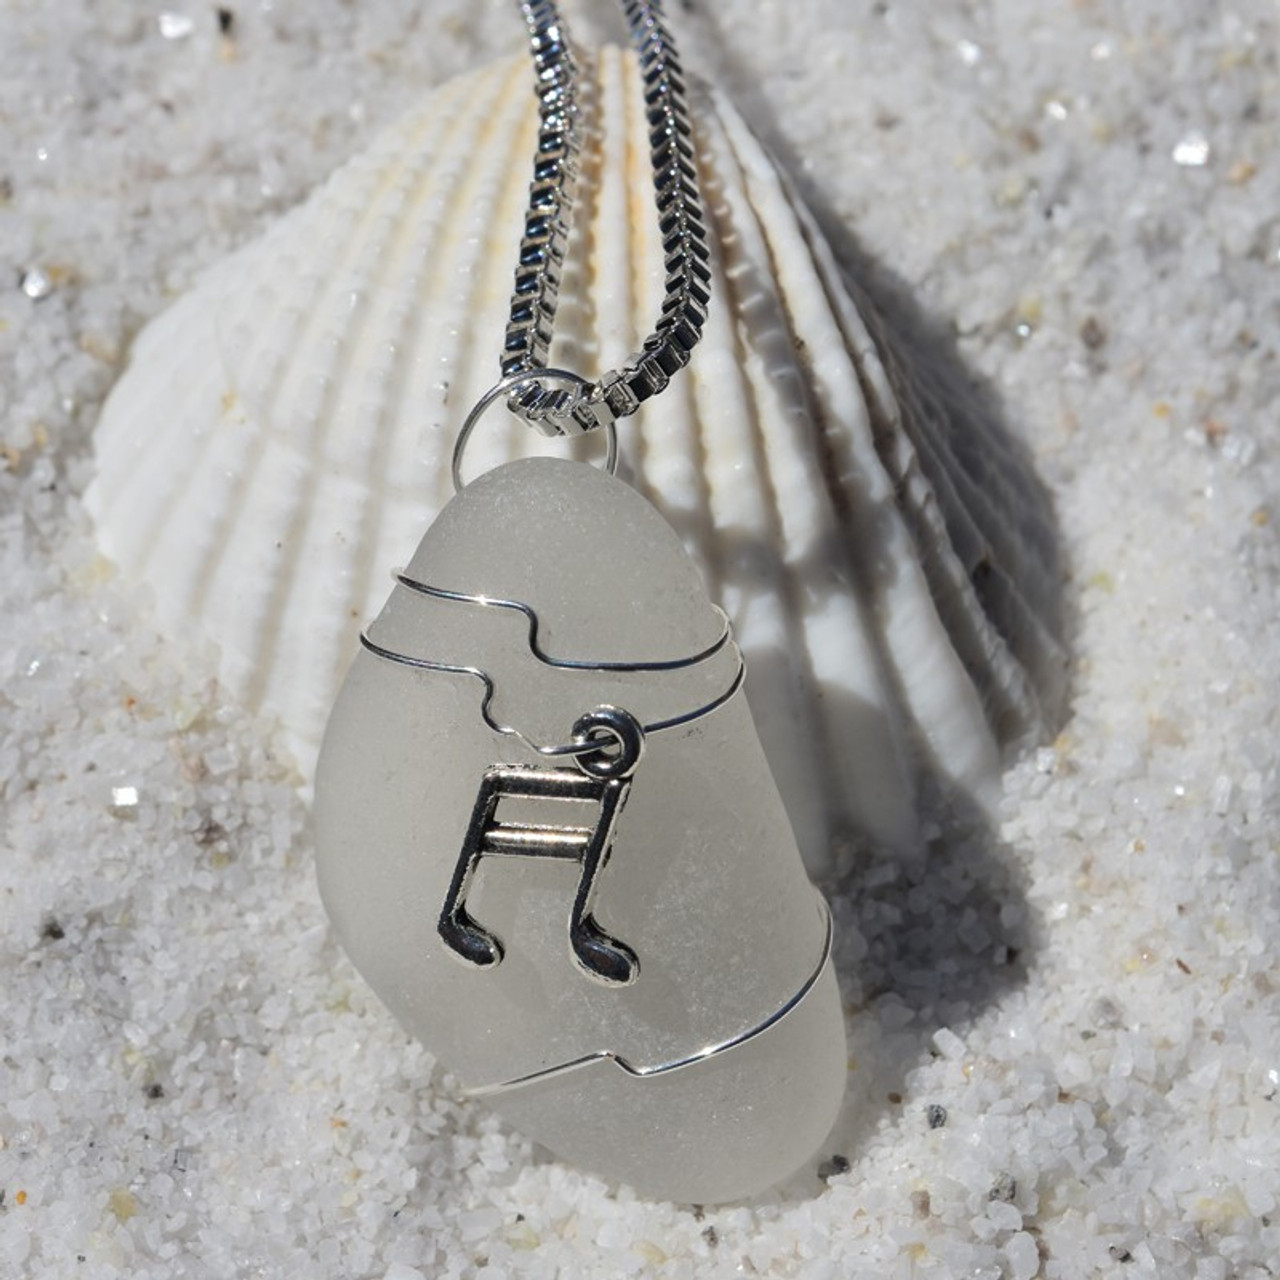 Custom Handmade Genuine Sea Glass Necklace with a Silver Musical Note Charm - Choose the Color - Frosted, Green, Brown, or Aqua